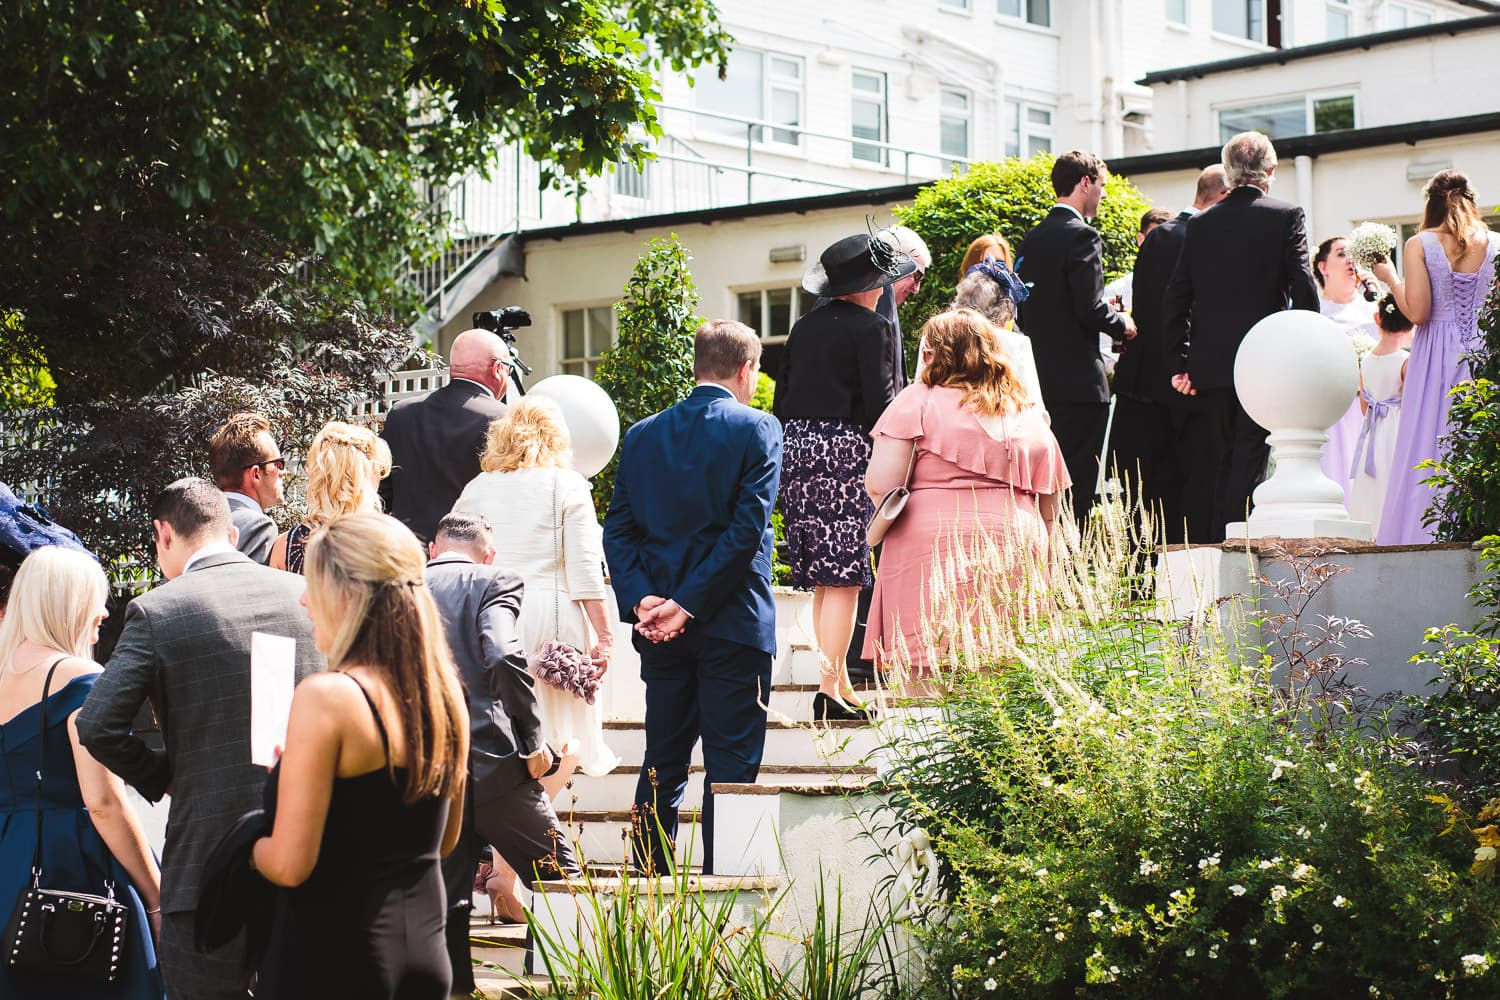 warwick house wedding guests line up to congratulate newlyweds